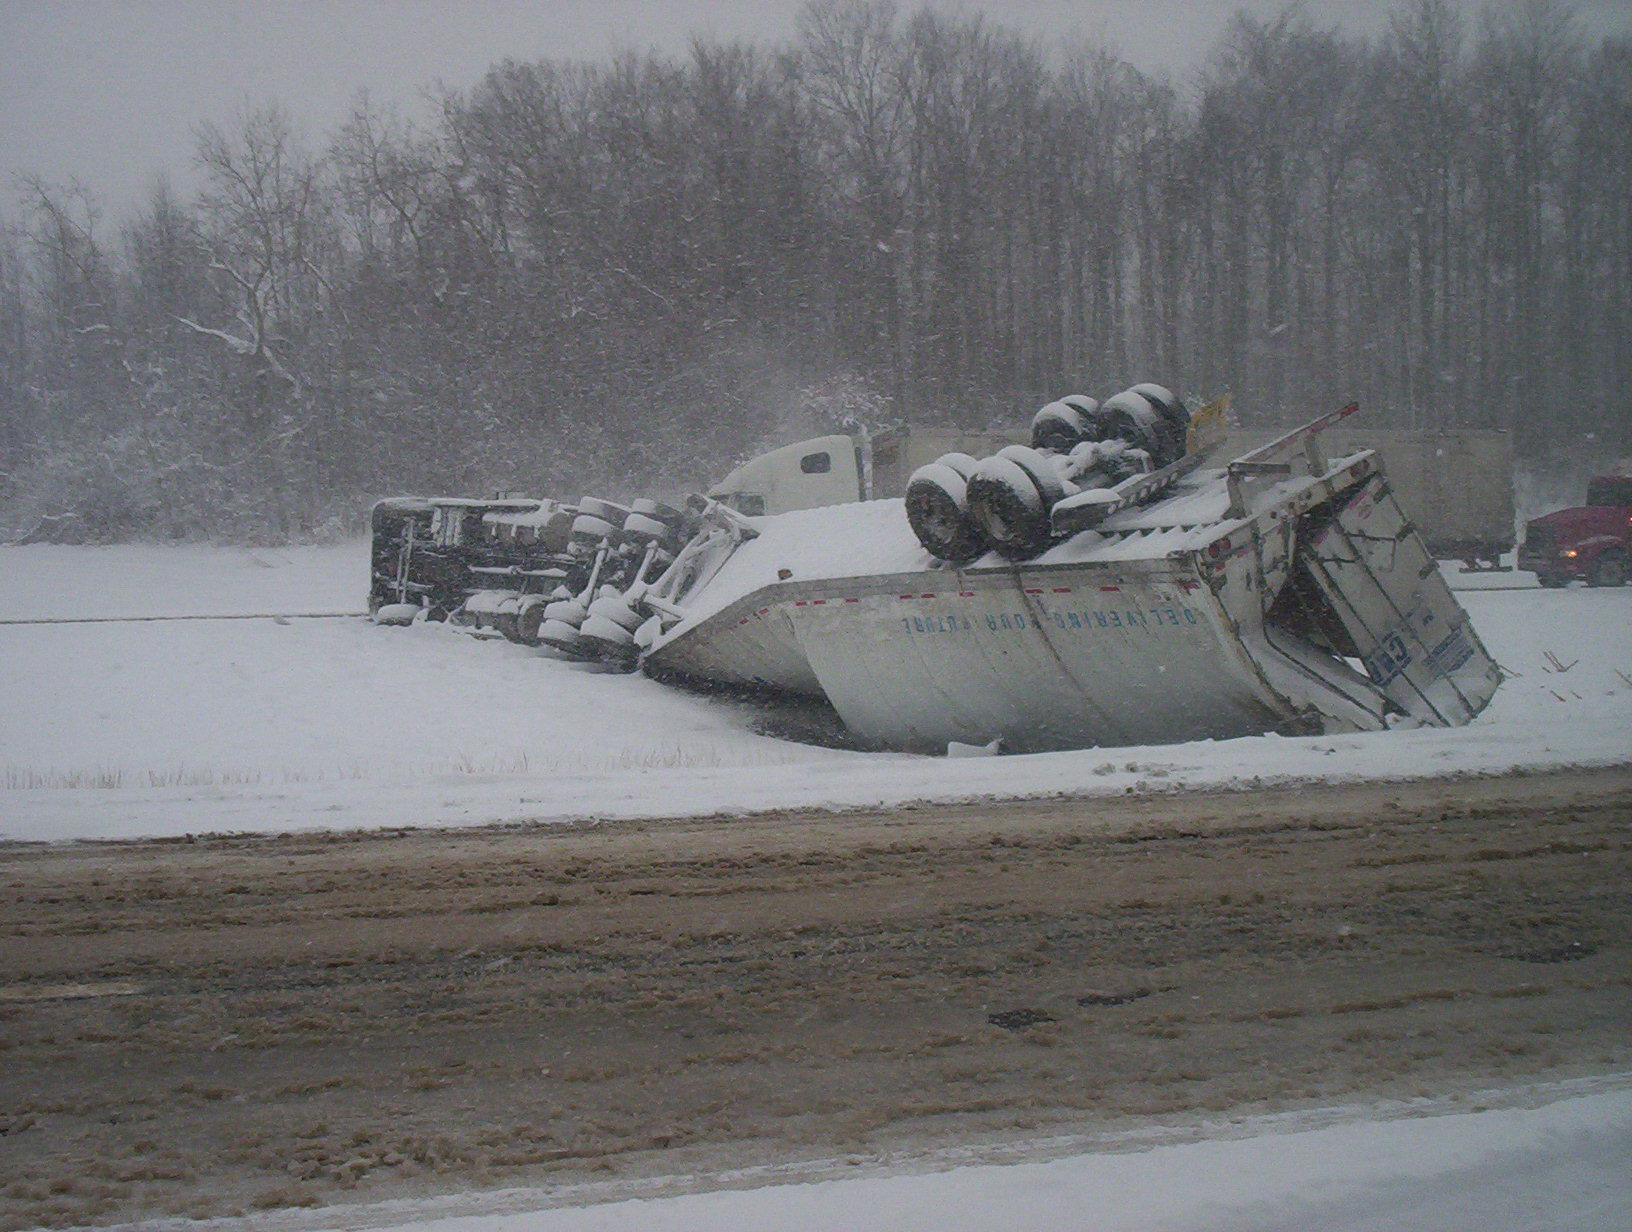 Overturned loaded with shovels